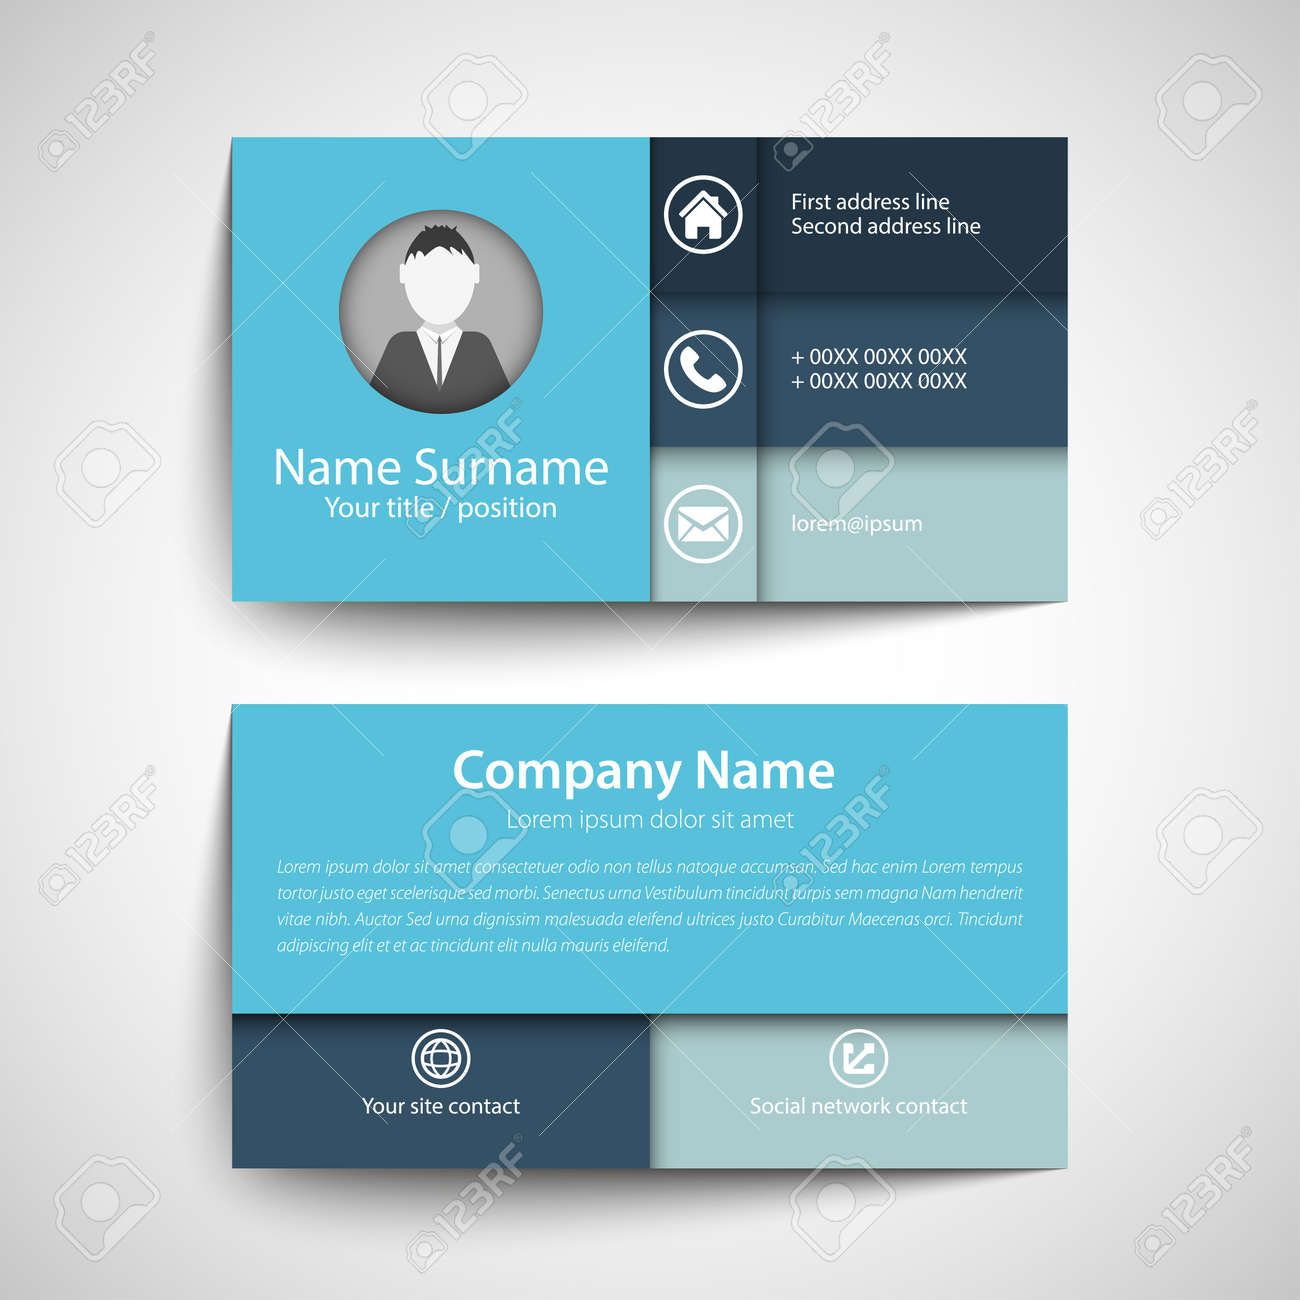 modern simple business card set template or ing card vector modern simple business card set template or ing card vector illustration stock vector